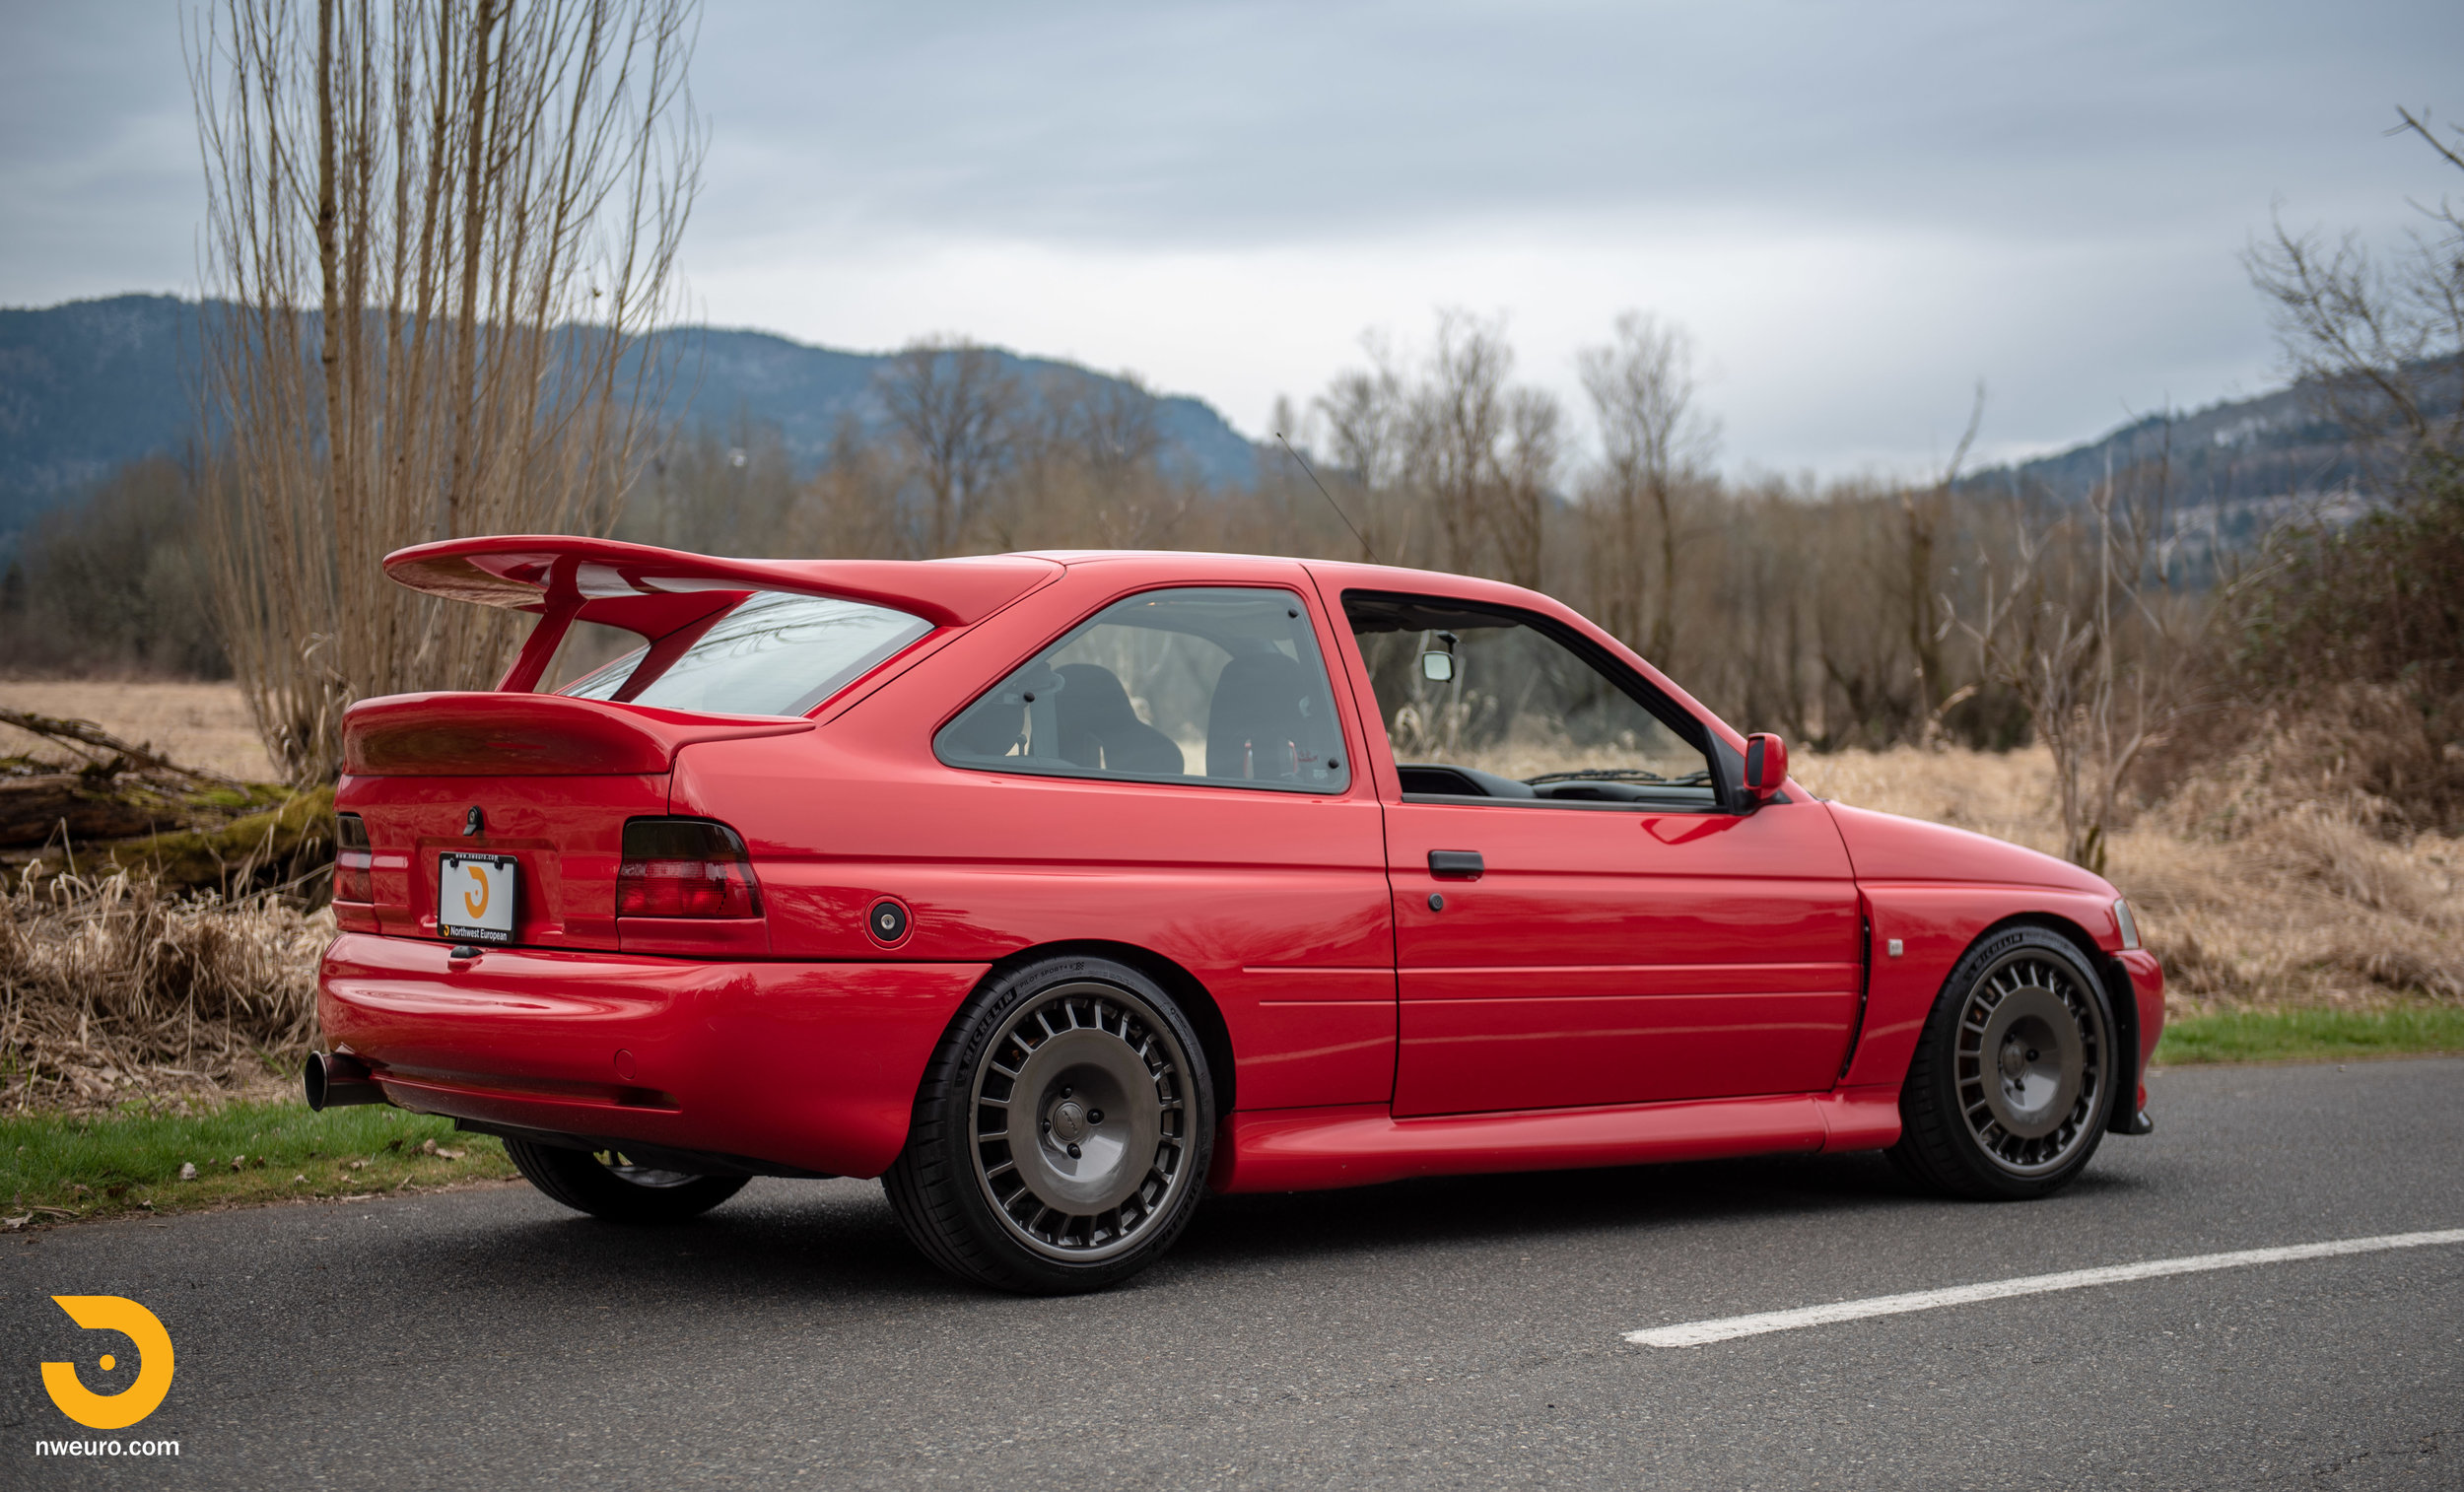 1993 Ford Escort Cosworth RS Red-95.jpg